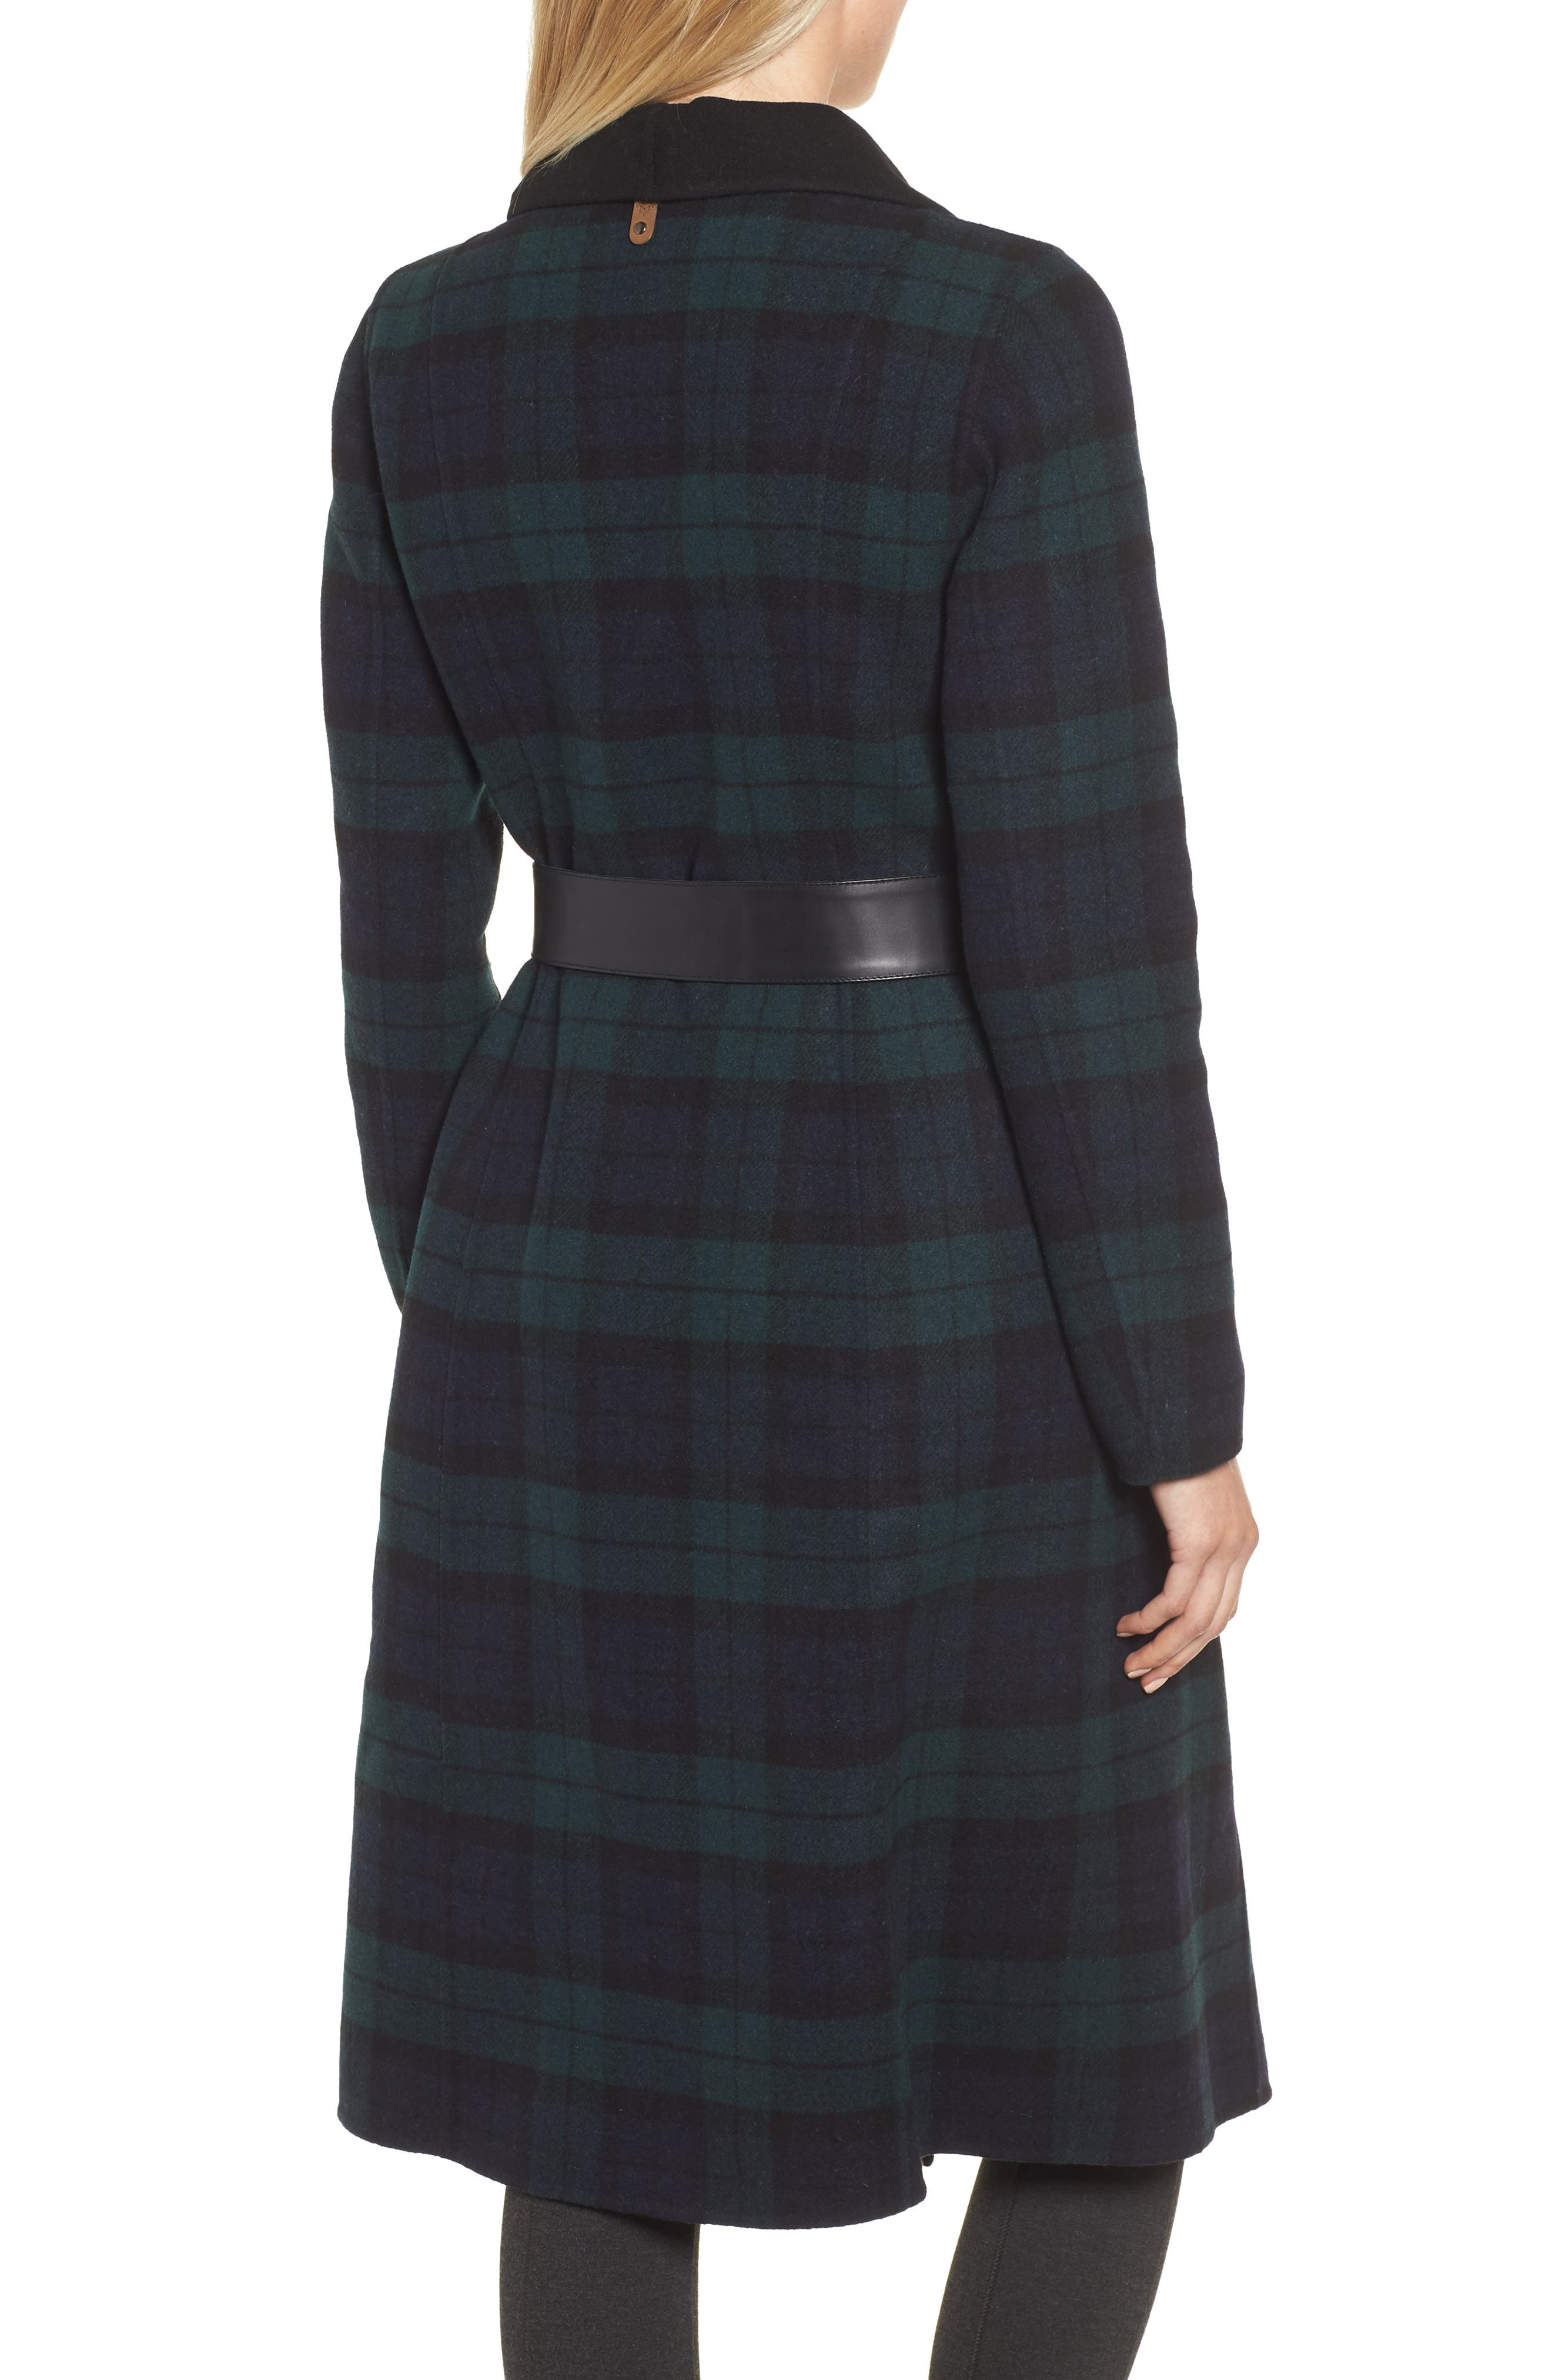 MACKAGE,                             Double Face Wool Leather Belted Coat,                             Alternate thumbnail 2, color,                             411